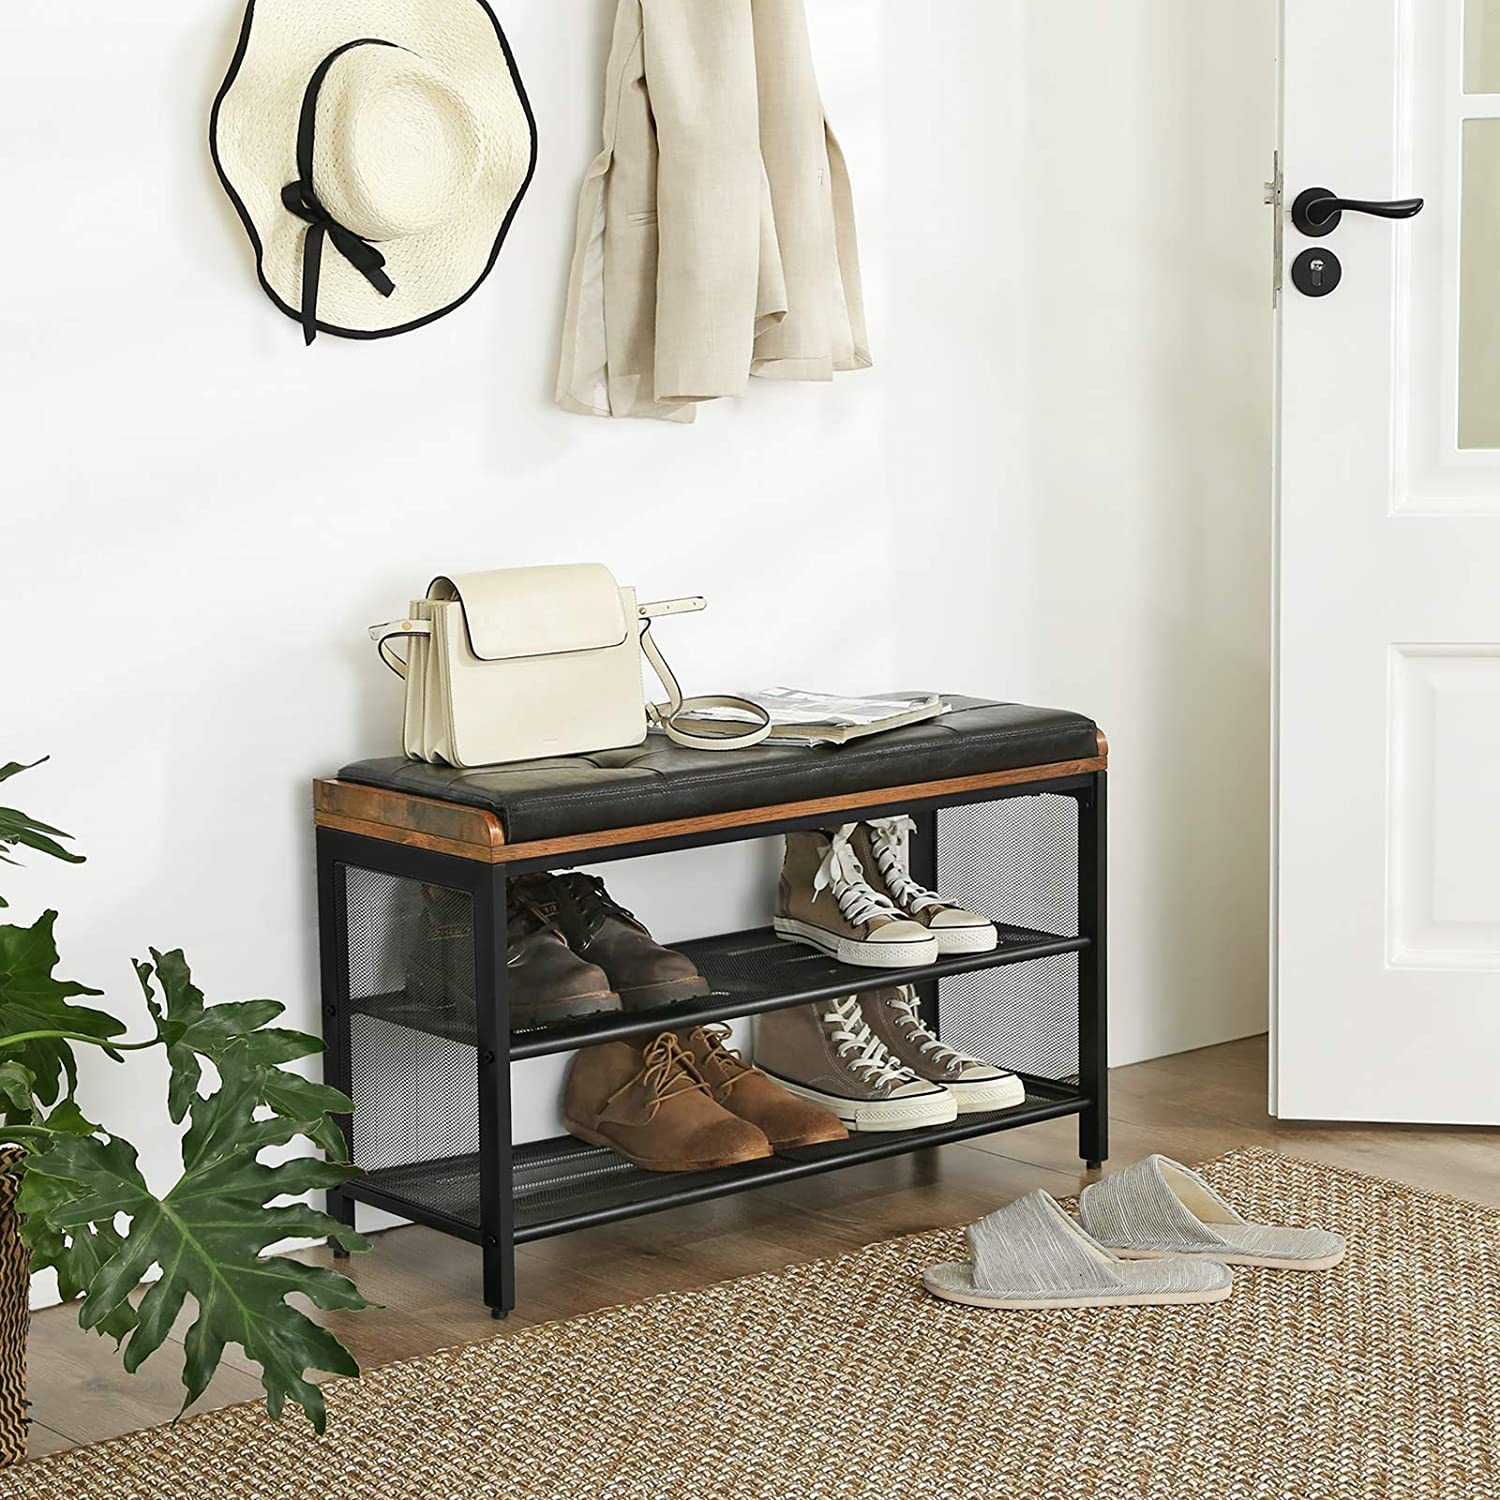 Primary image for Industrial Hallway Storage Chests, Shoe Bench, Padded Storage Shoe Rack, Metal F